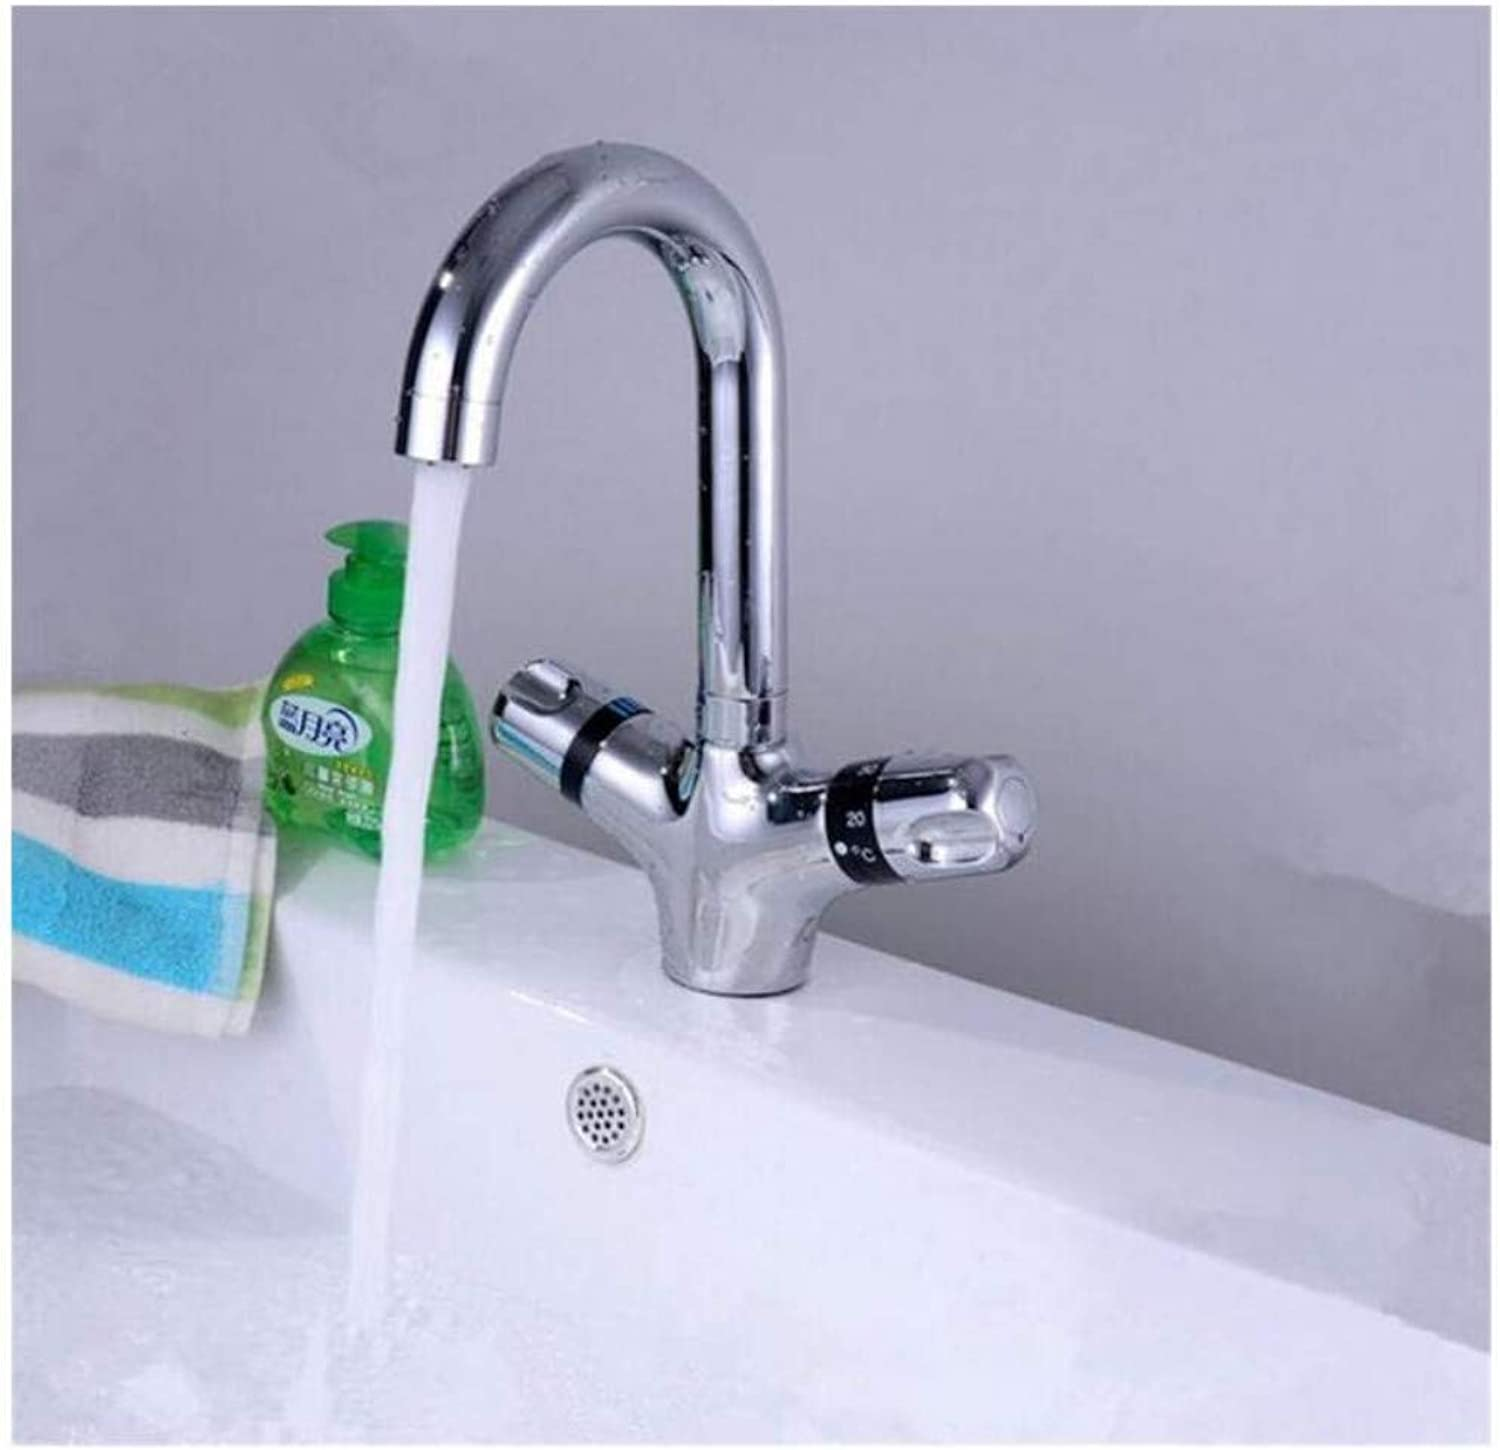 Modern Double Basin Sink Hot and Cold Water Faucetthermostatic Bathroom Mixer Faucet Sink Mixer Tap The Basic Fauct